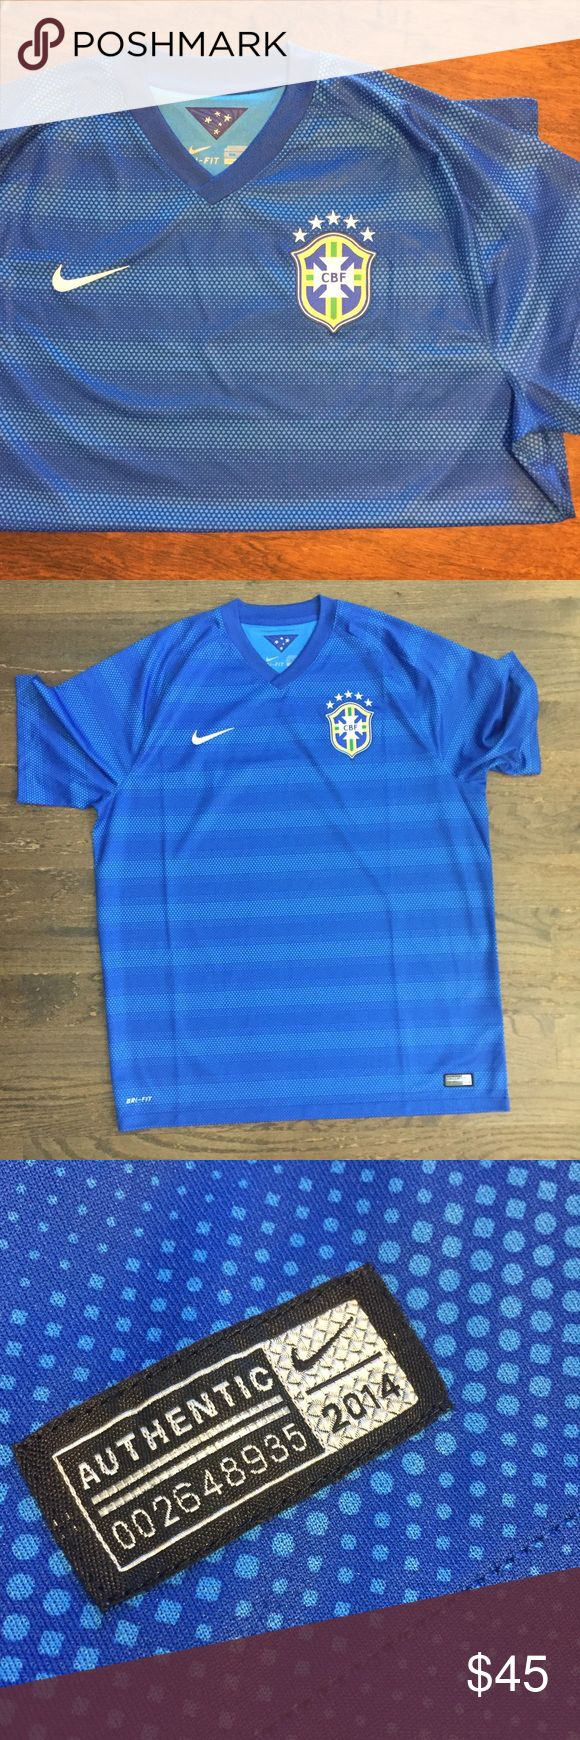 Nike Dri-Fit Brazilian National Team Soccer Jersey Nike Dri-Fit Brazilian National Team Soccer Jersey.   Authentic jersey tag with # at bottom right.   Dated 2014, so is the official team jersey from that year.   This blue jersey was their away jersey that year.   Brand new!   Never worn!   Was purchased in Brazil, but is the wrong size.   Size XXL.  No tags.  CBF stands for Confederação Brasileira de Futebol.   Offers totally welcome!  Take advantage of bundles for a discount and to…